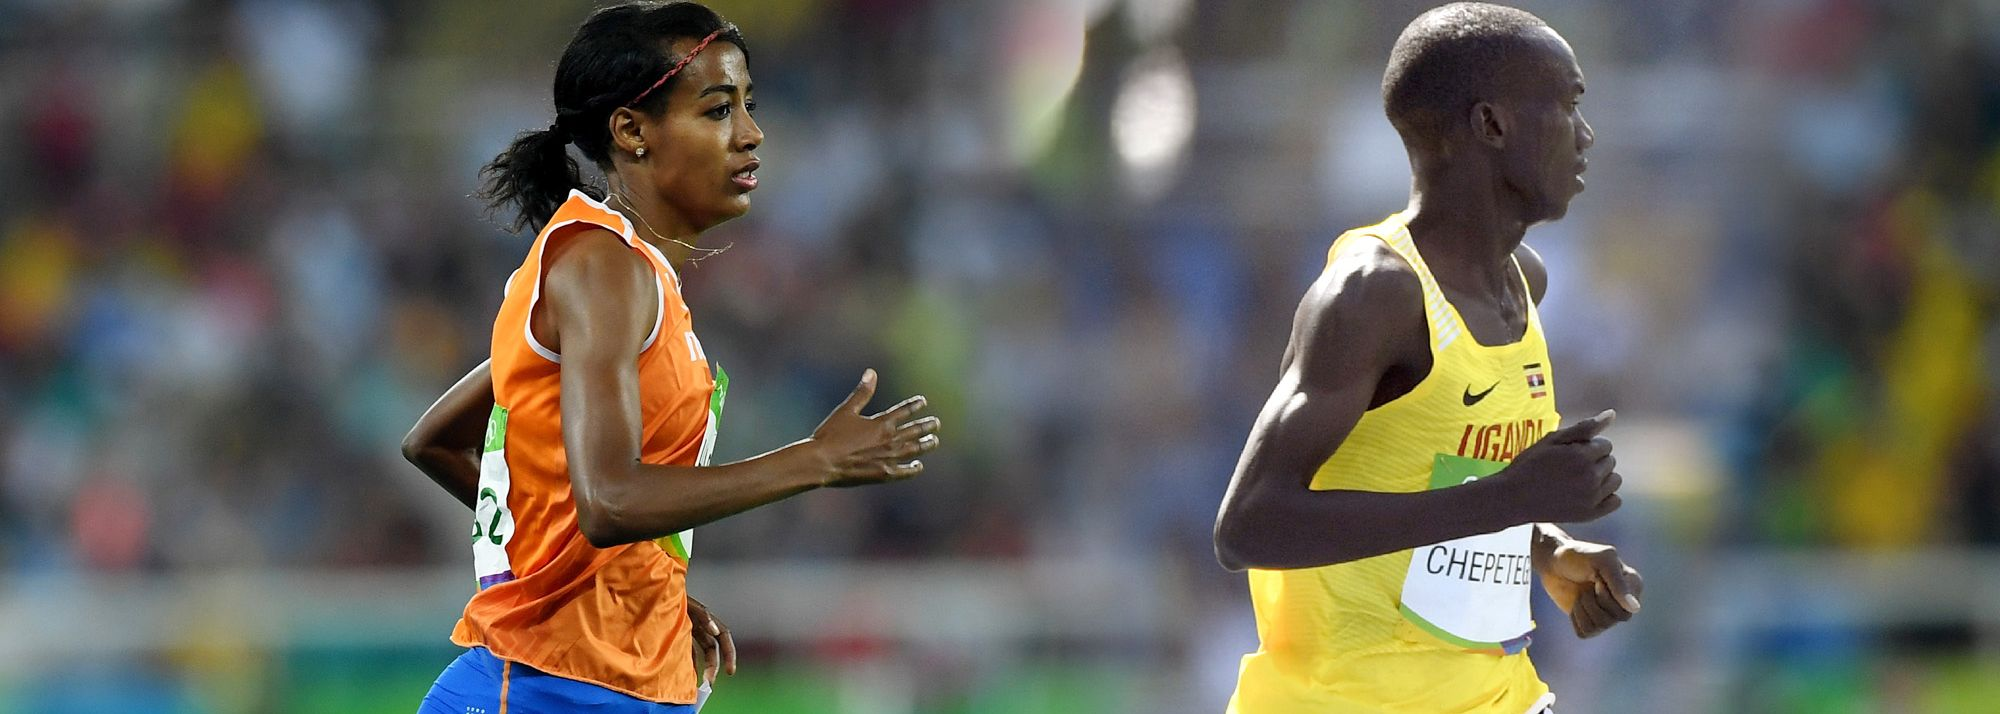 Expected highlights in the 10,000m